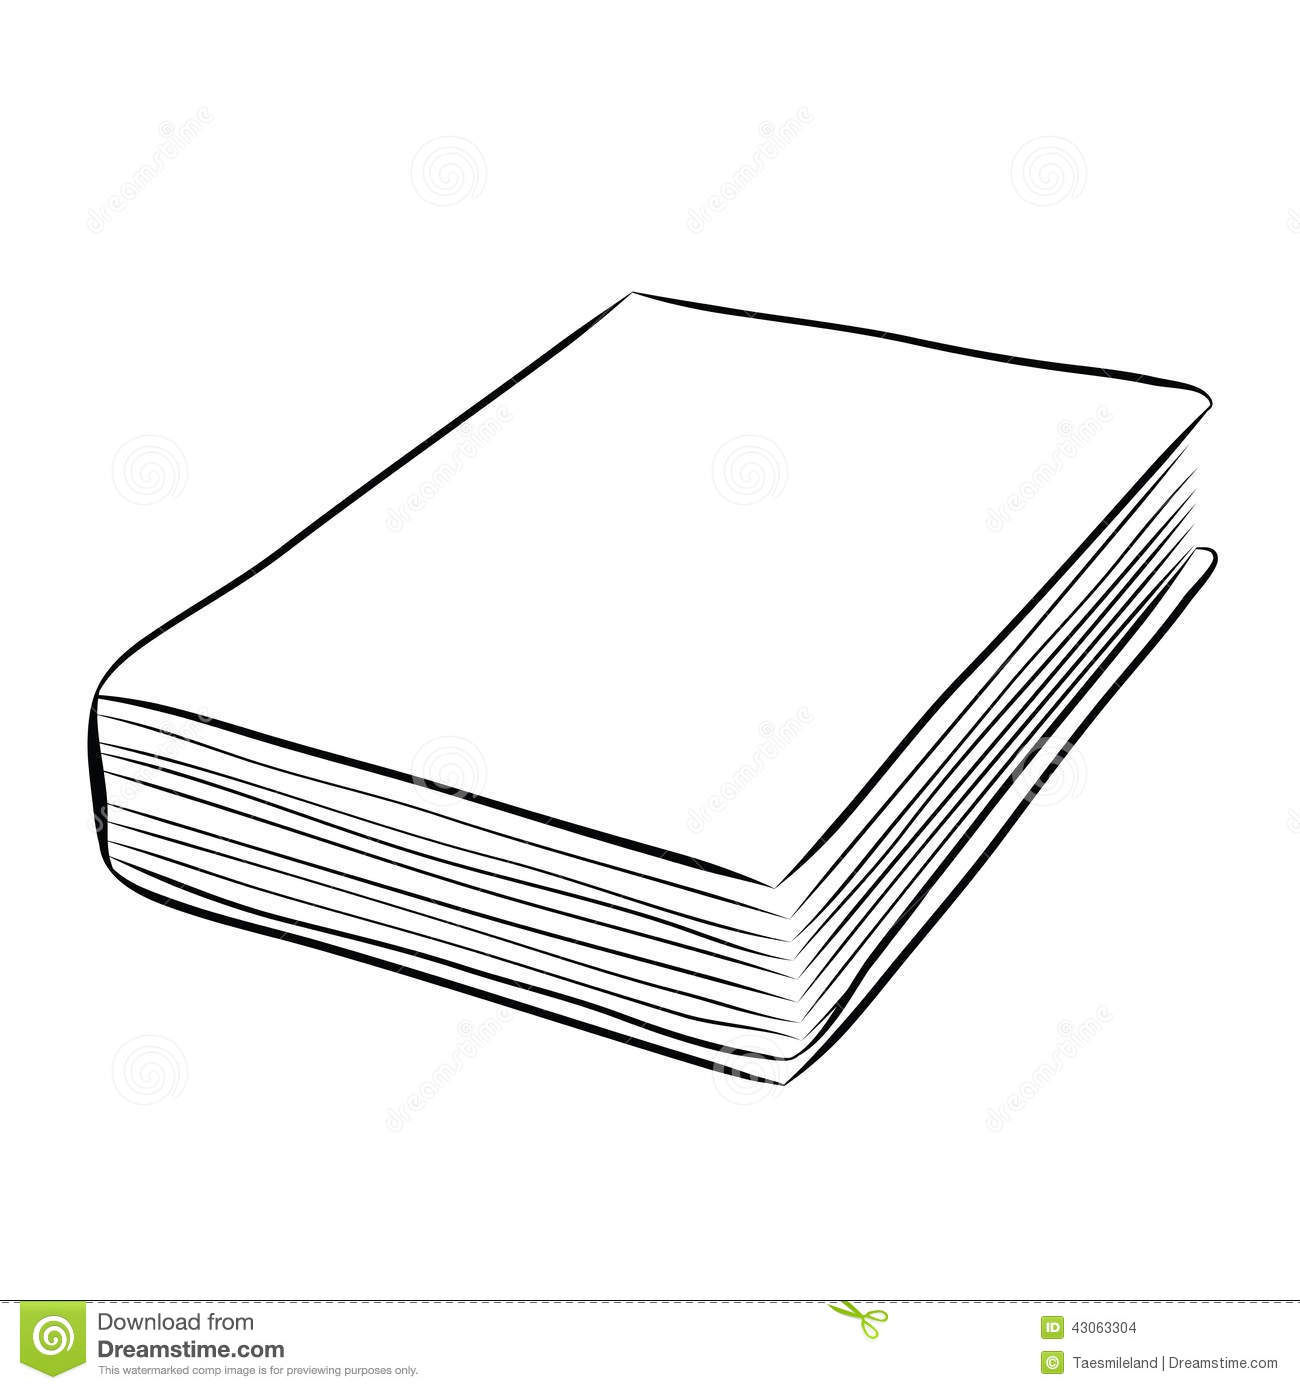 Cover book hand draw stock vector. Image of education